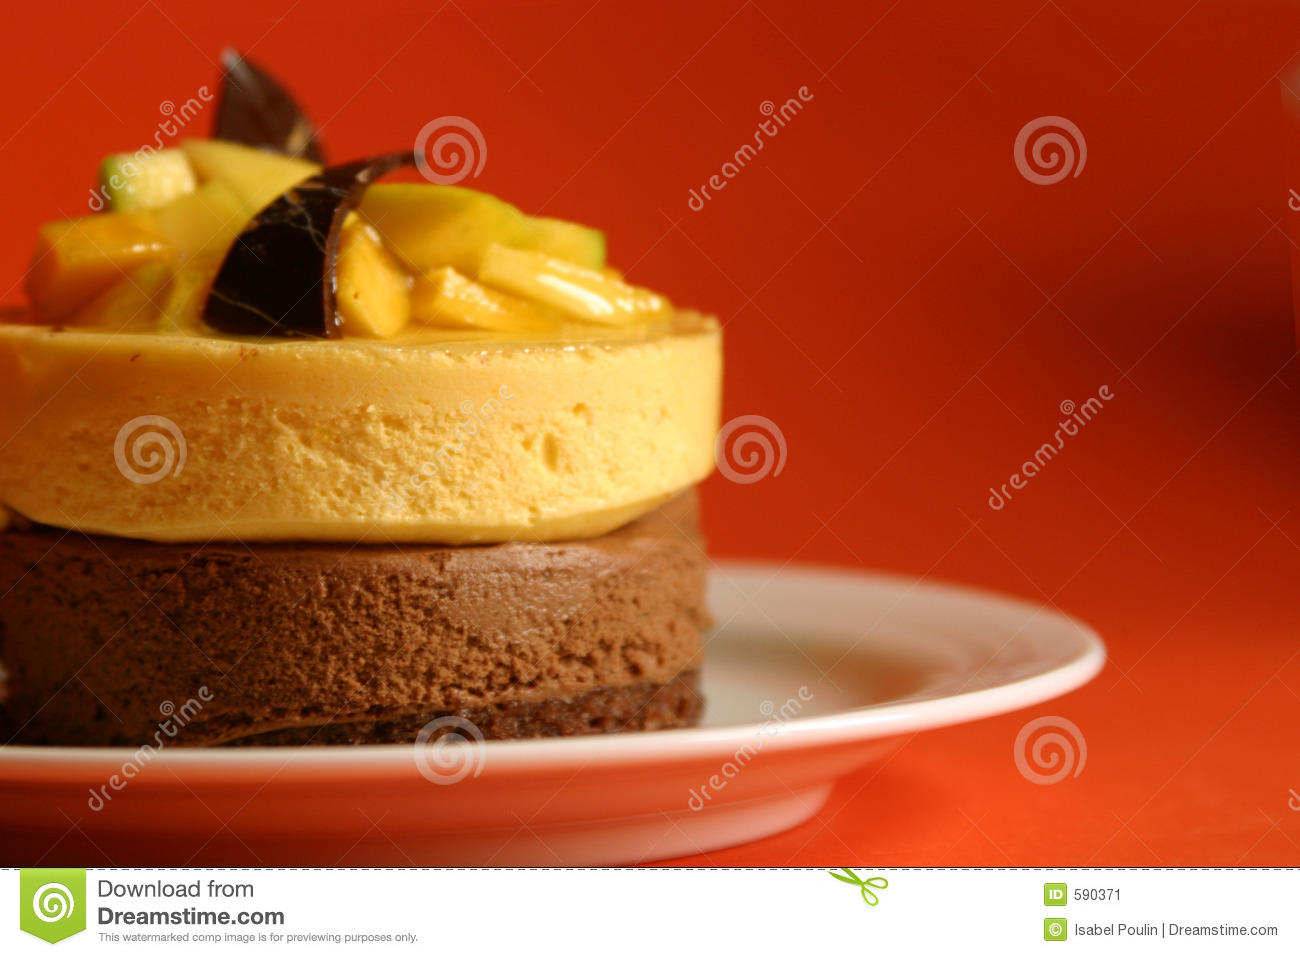 Mango and chocolate mousse